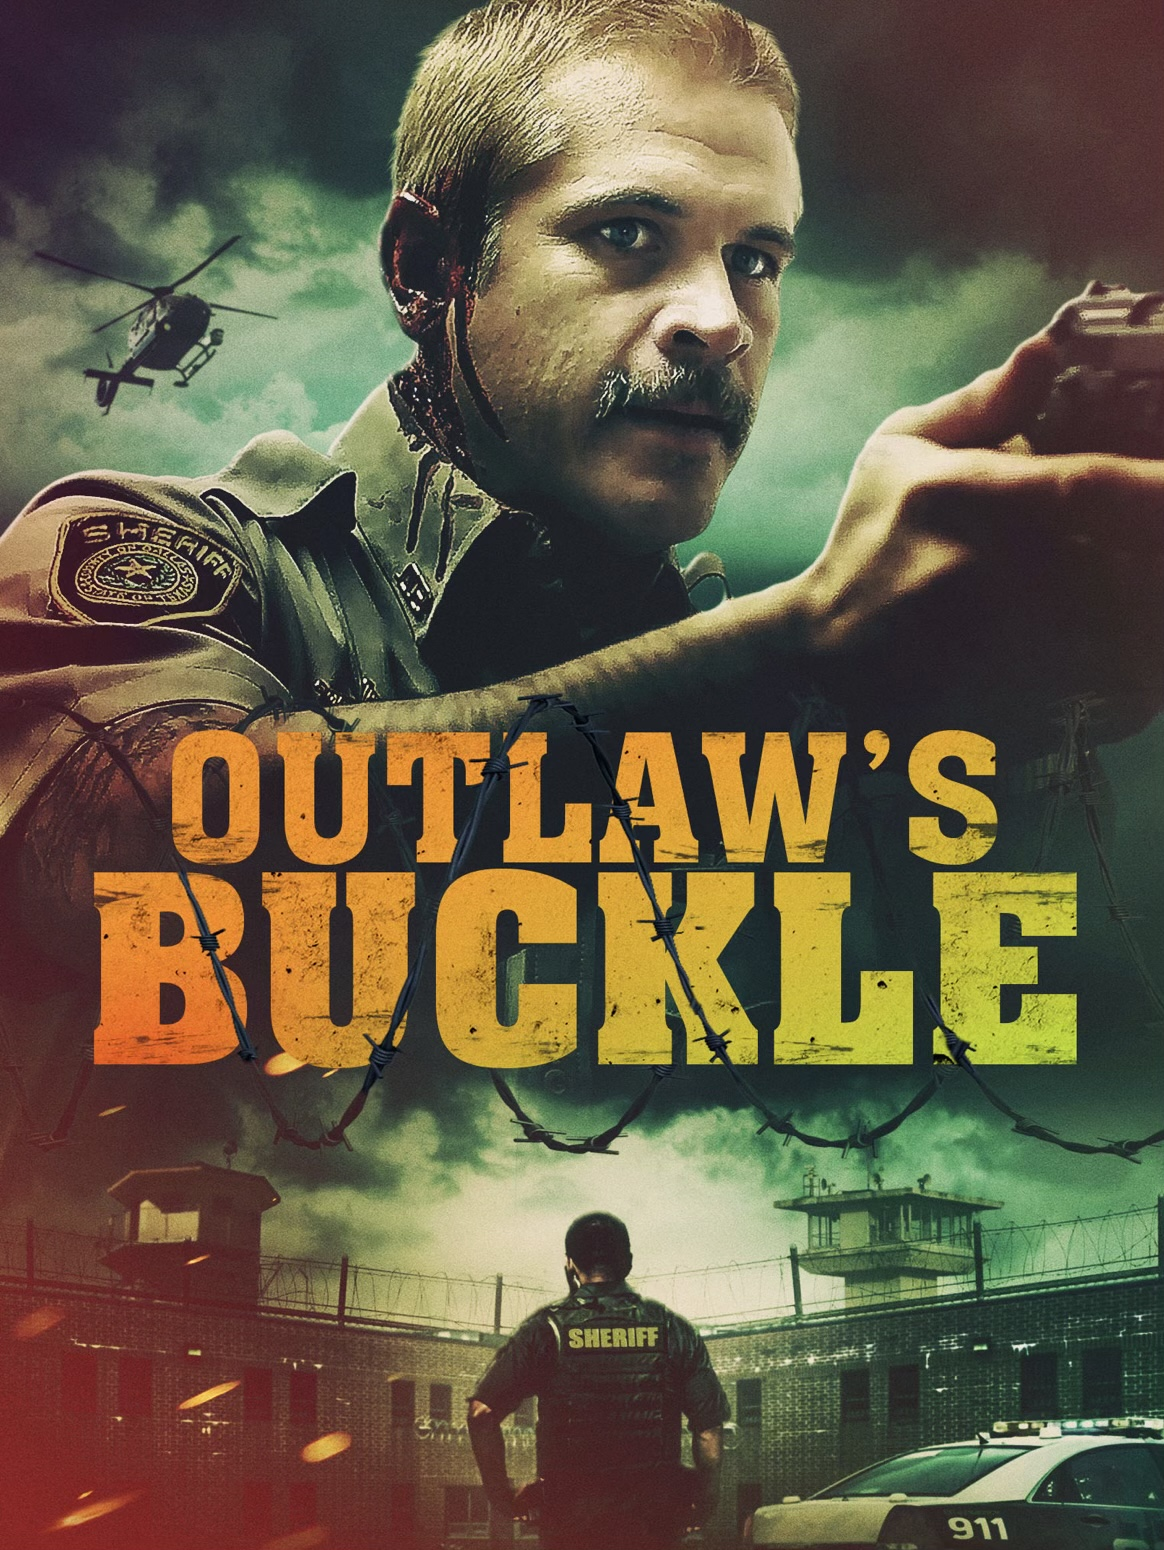 Watch Movie Outlaw's Buckle